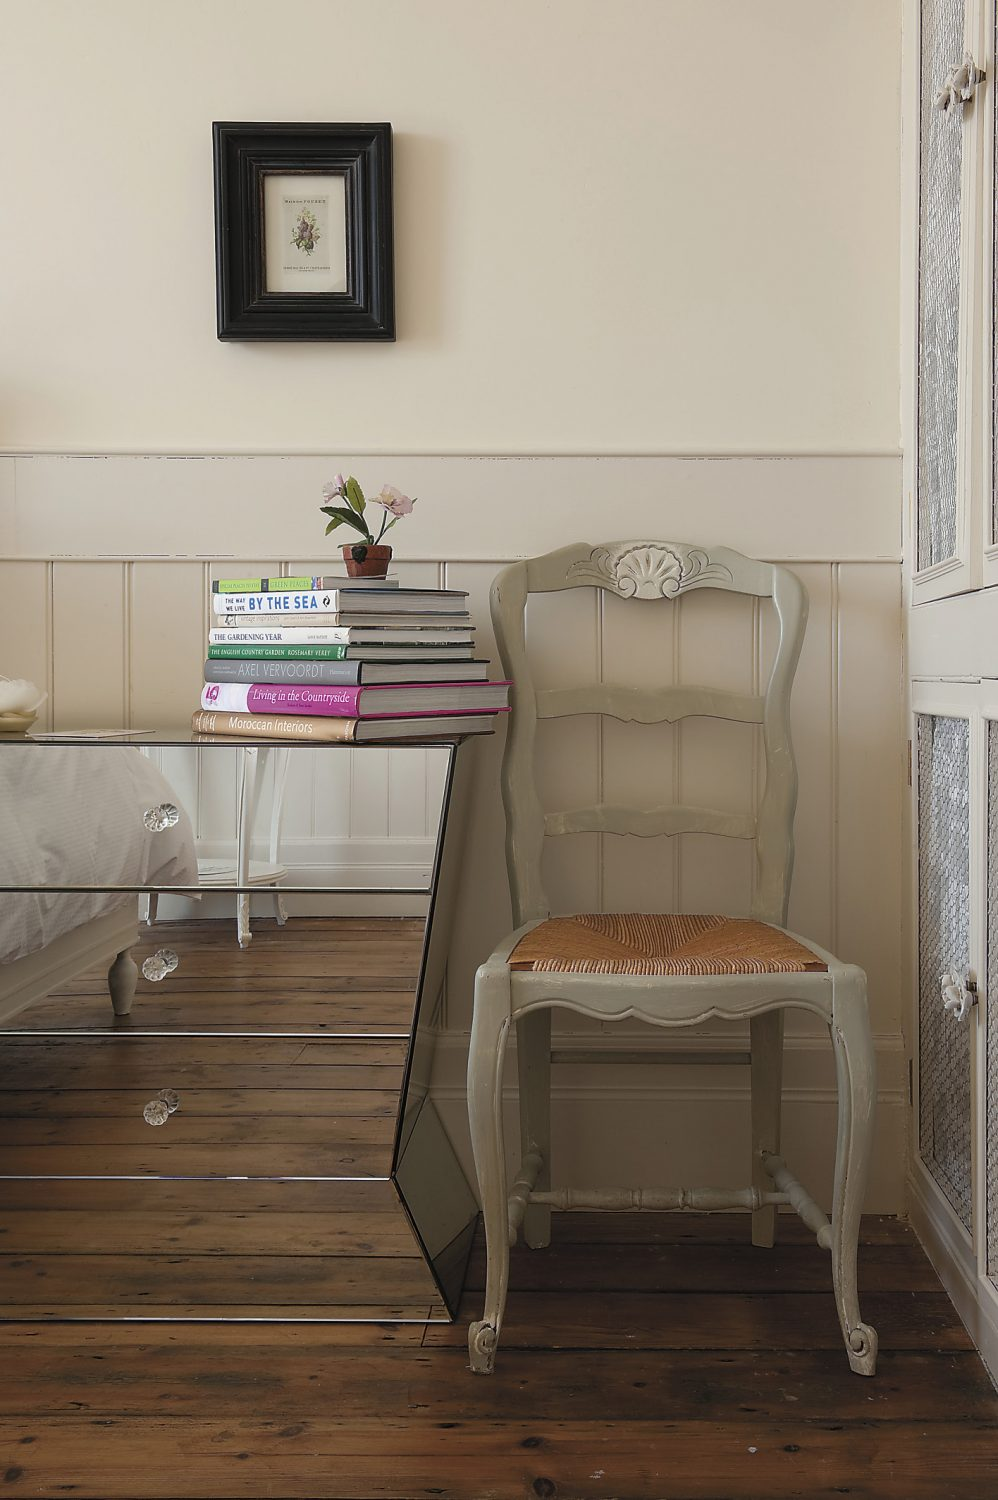 the house is home to a host of interiors books that Vickie has collected and from which she has drawn inspiration, some of which are displayed on the Venetian-style bedside table in one of two guest bedrooms